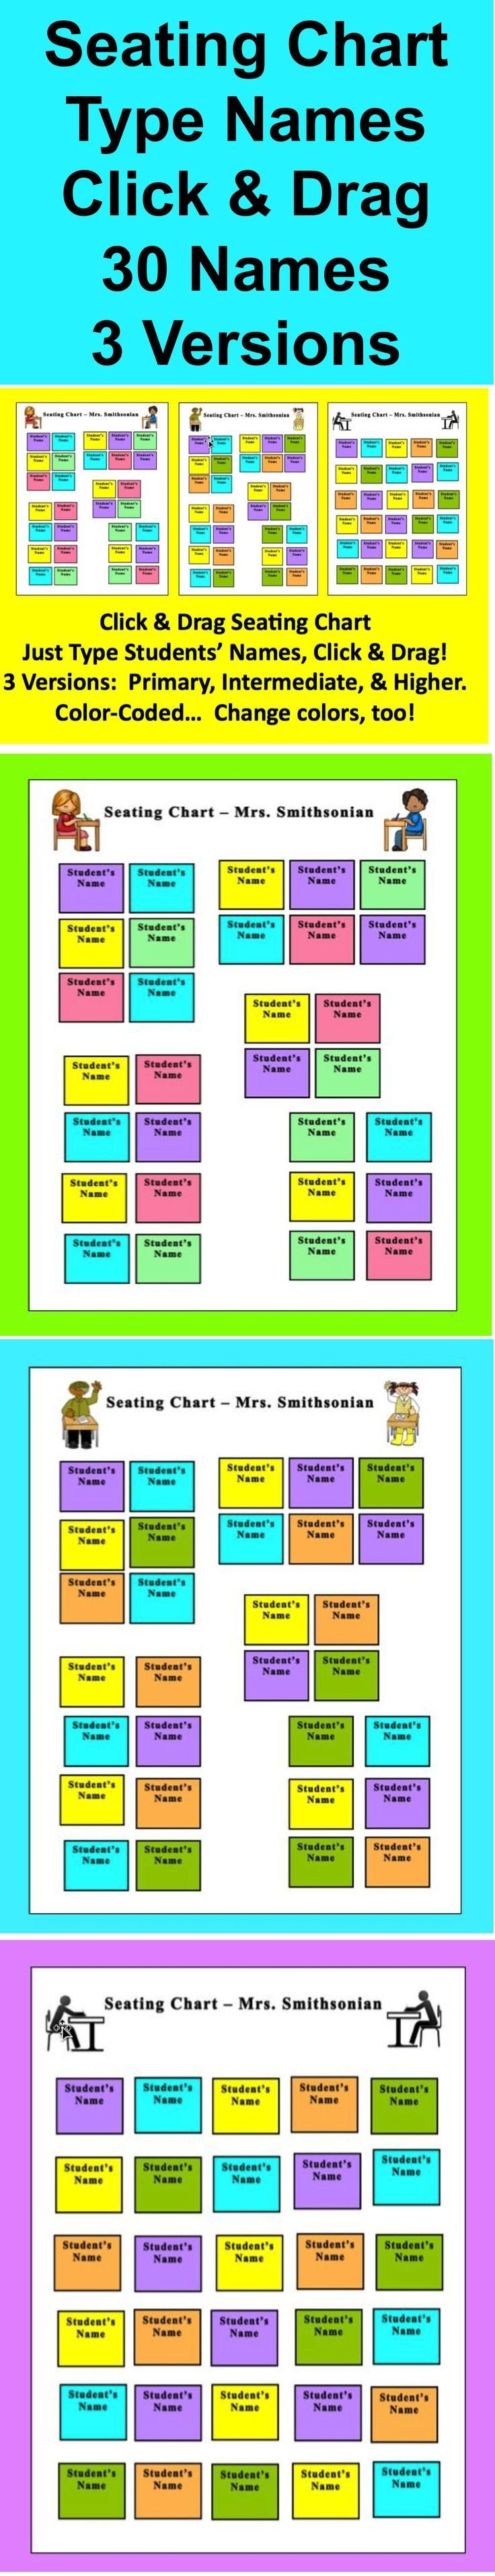 78 best ideas about seating chart classroom on pinterest